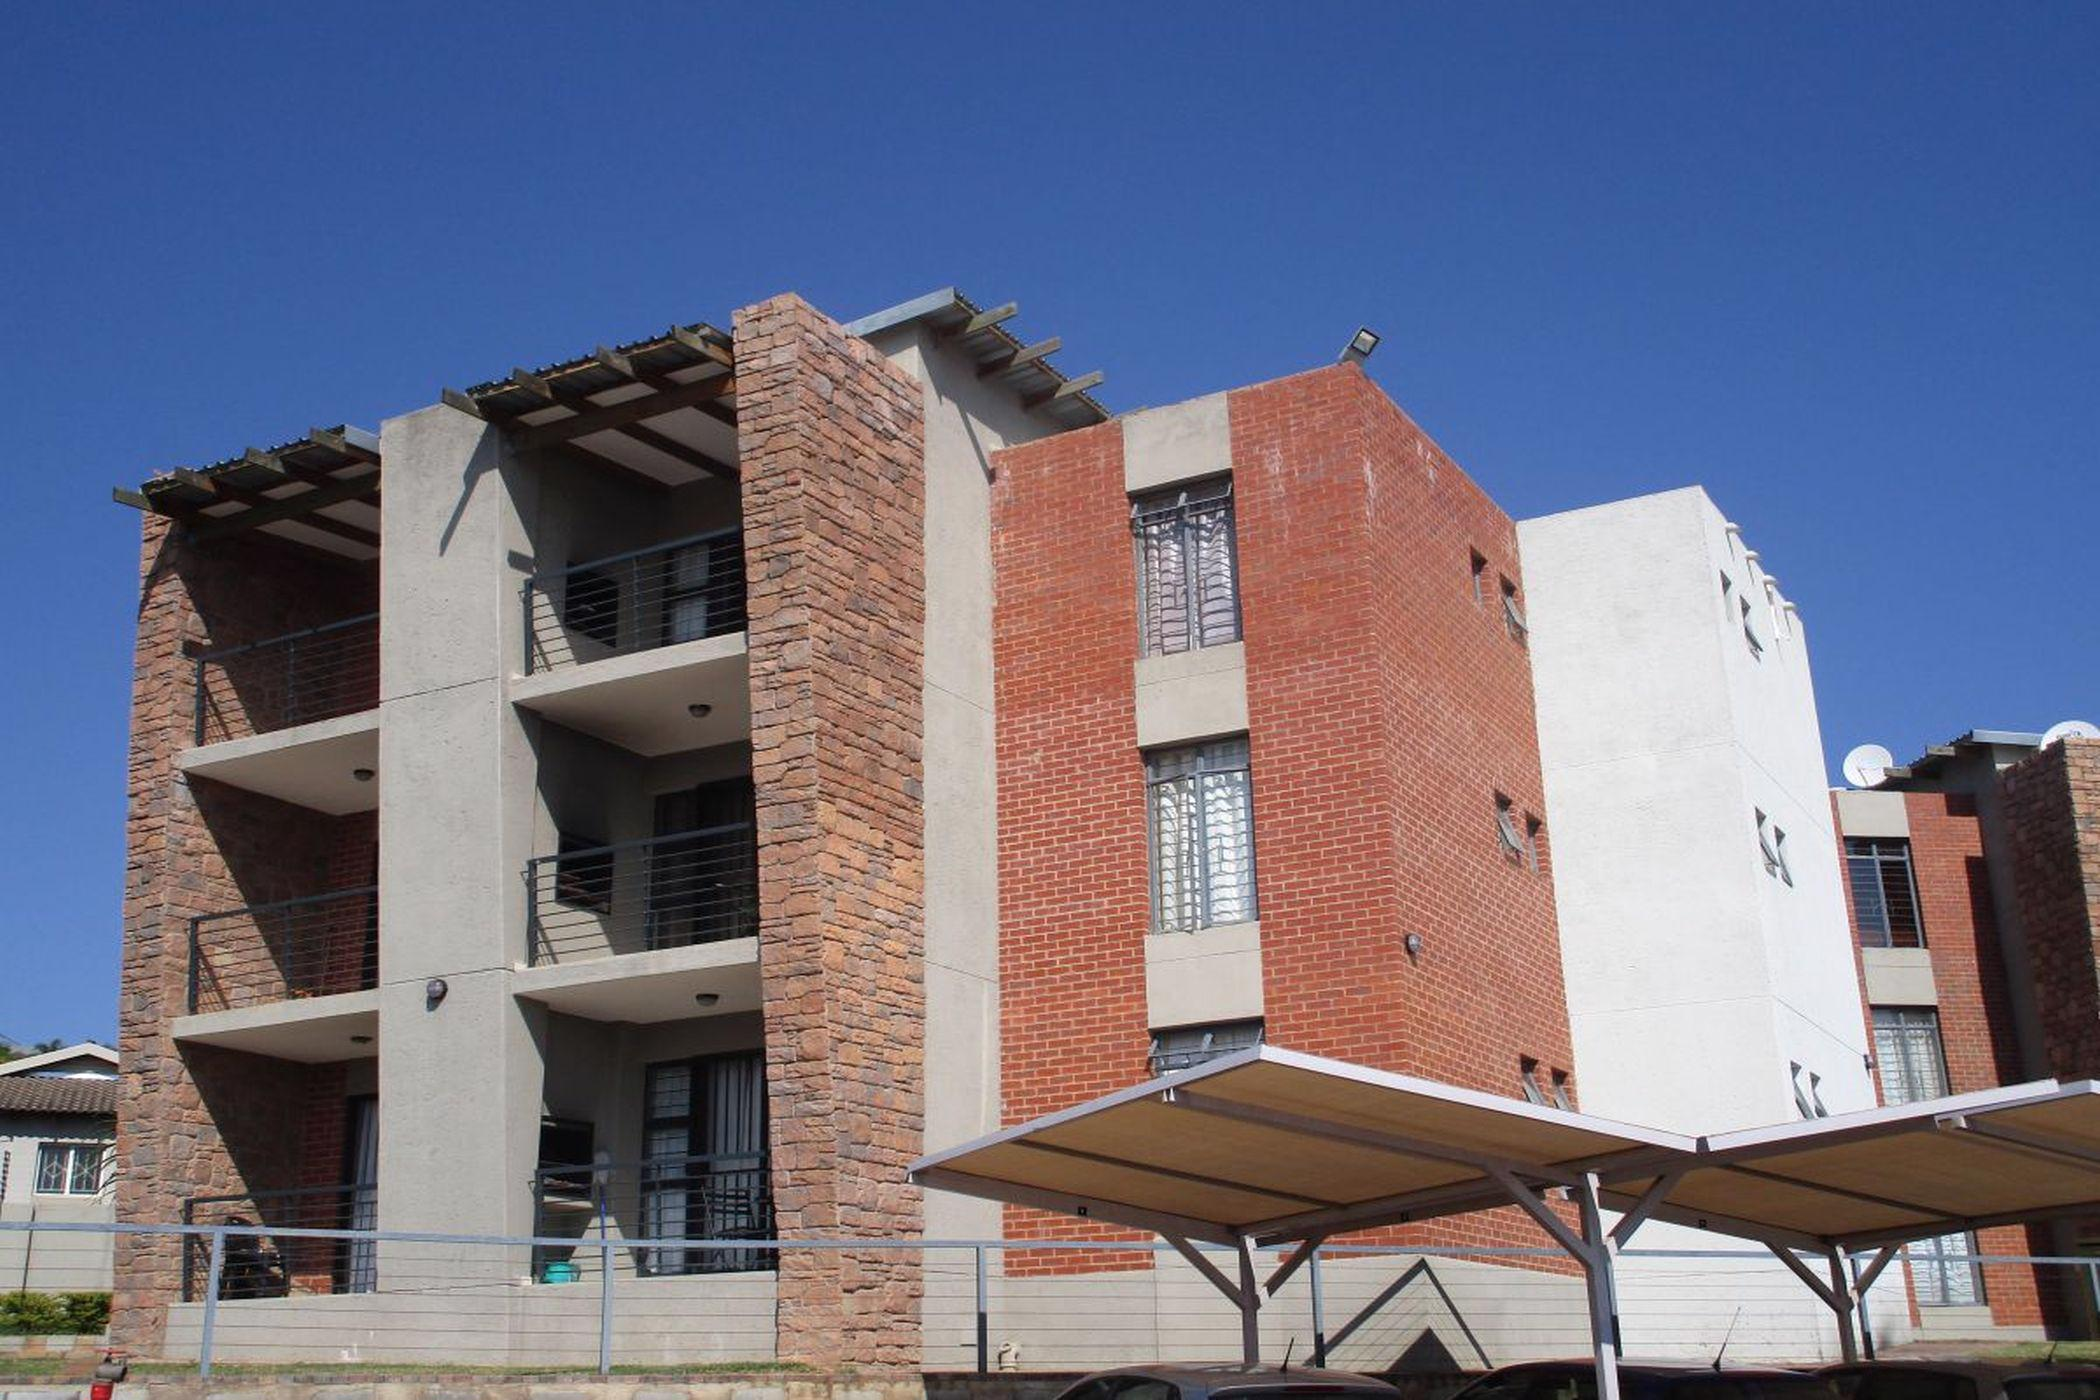 West Acres 2 Bedroom Apartments To Rent Pam Golding